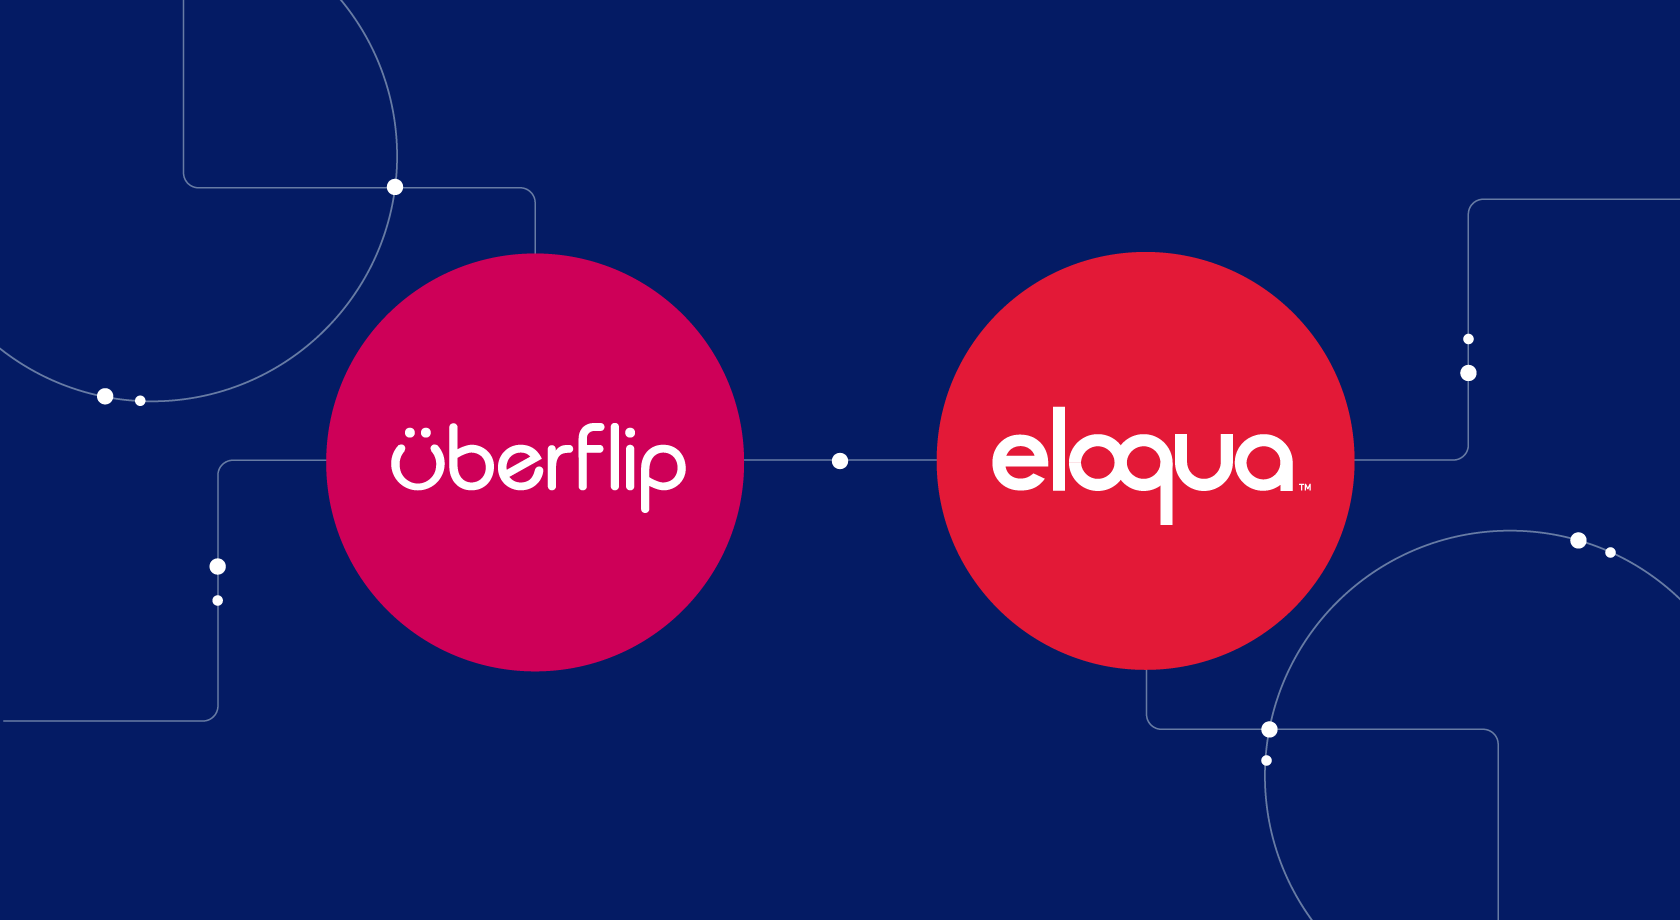 Uberflip and Eloqua logos